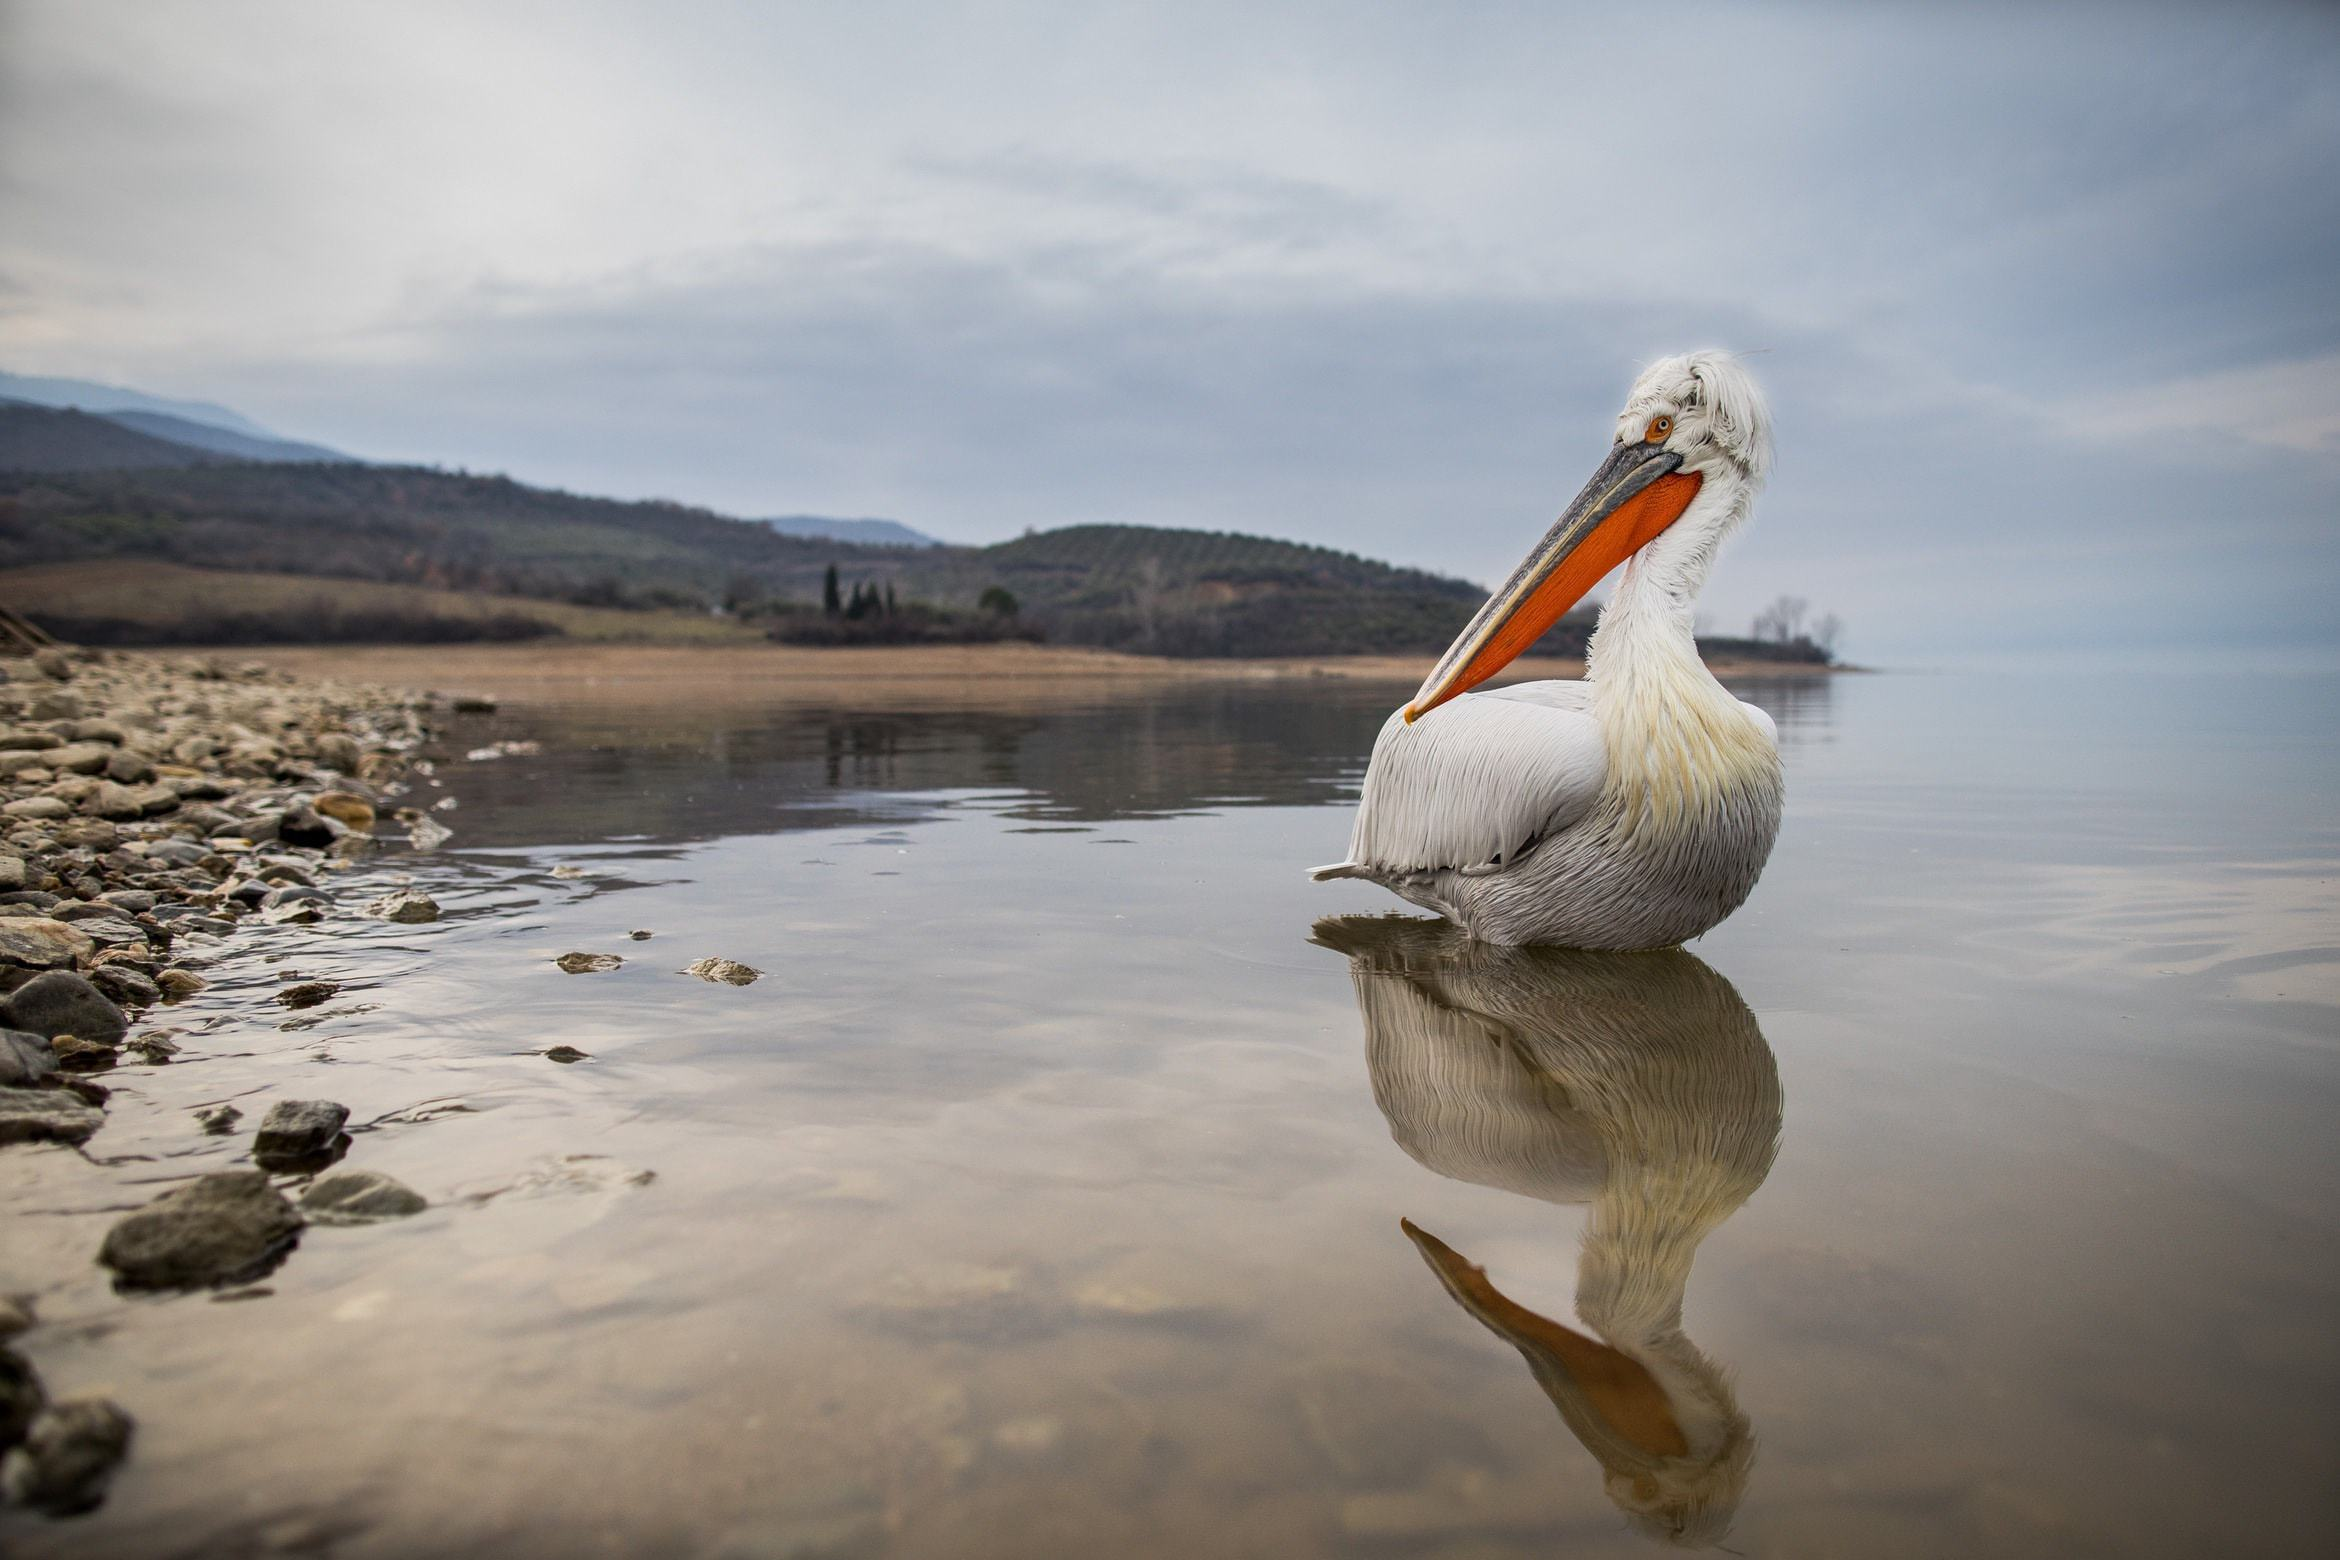 Example Of The Type Of Image That You Will Have Opportunities To Capture During The NaturesLens Dalmatian Pelicans Of Kerkini WIldlife Photograhpy Holiday